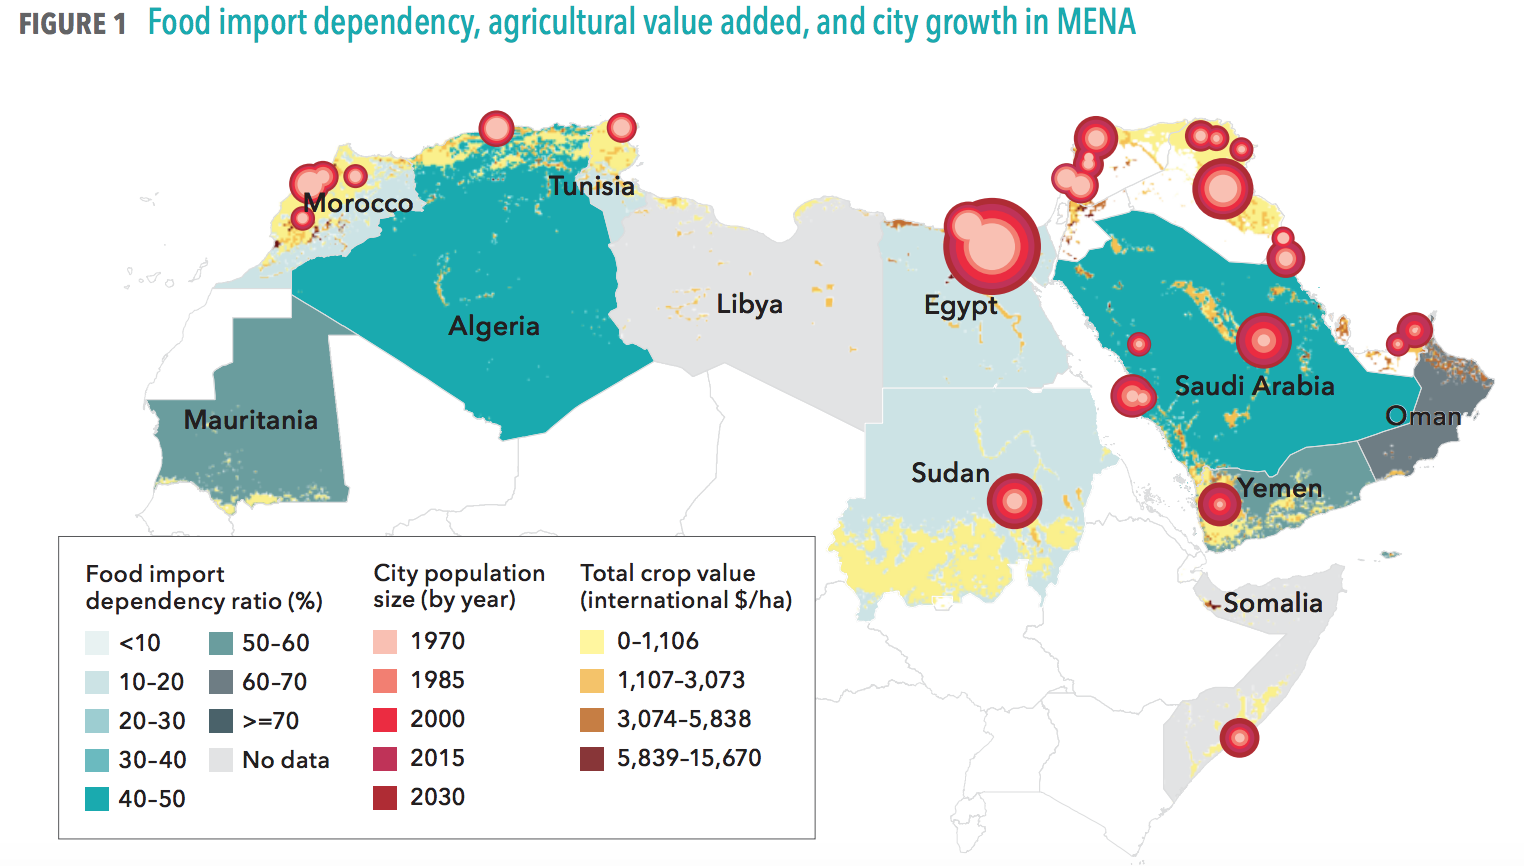 Food import dependency, agricultural value added, and city growth in MENA